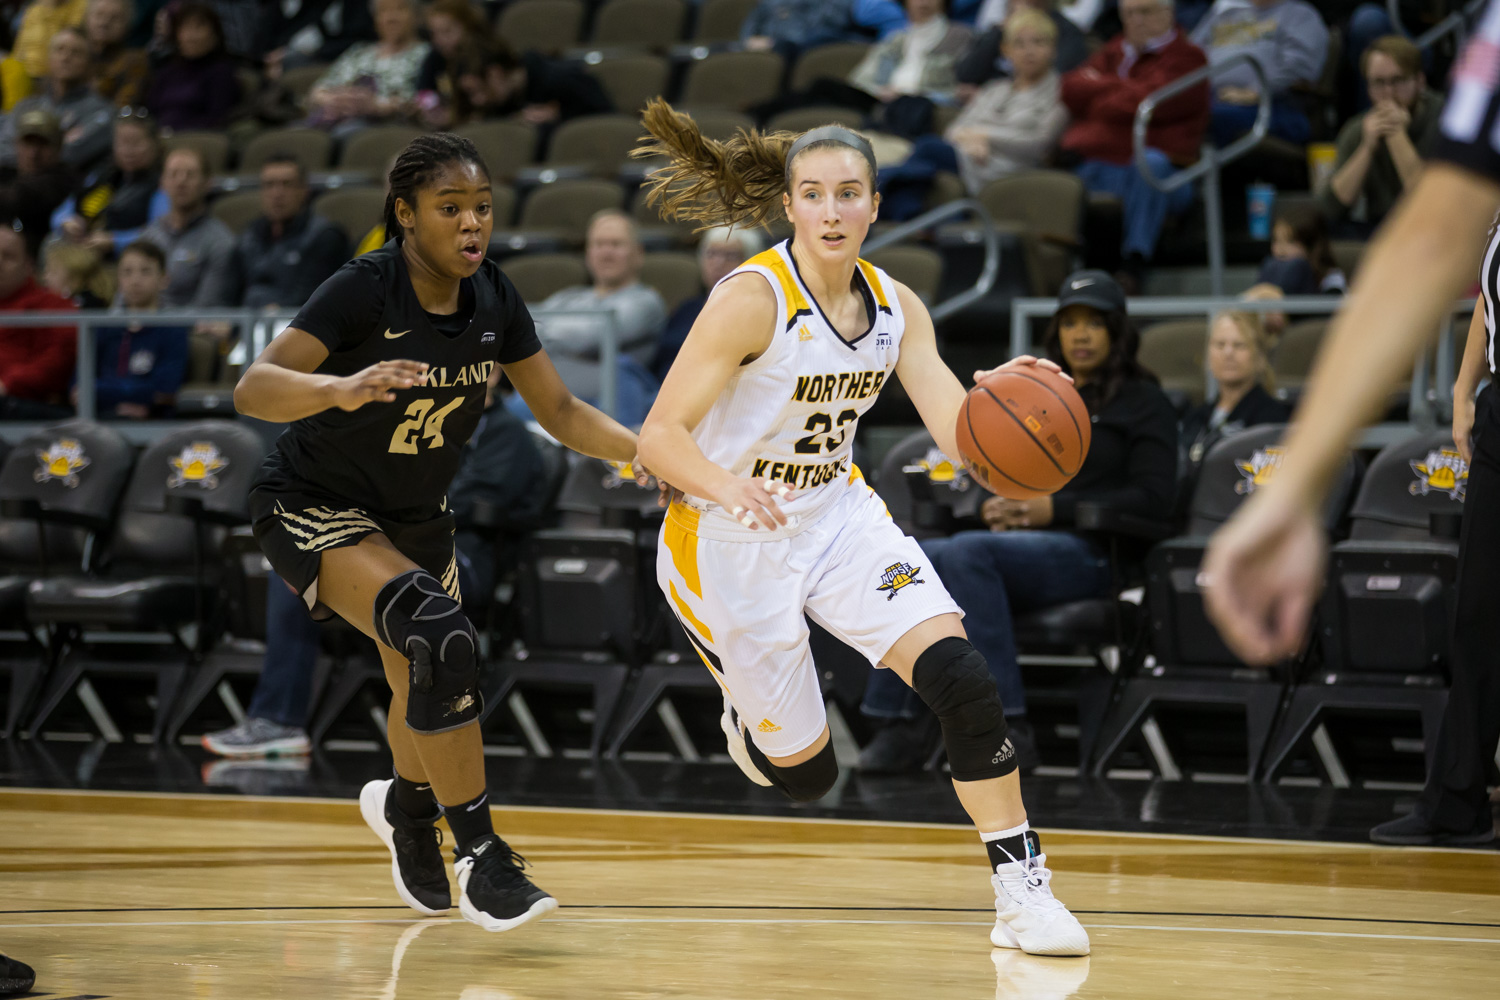 Kailey Coffey (23) drives to the basket during the game against Oakland. The Norse defeated Oakland 72-50.